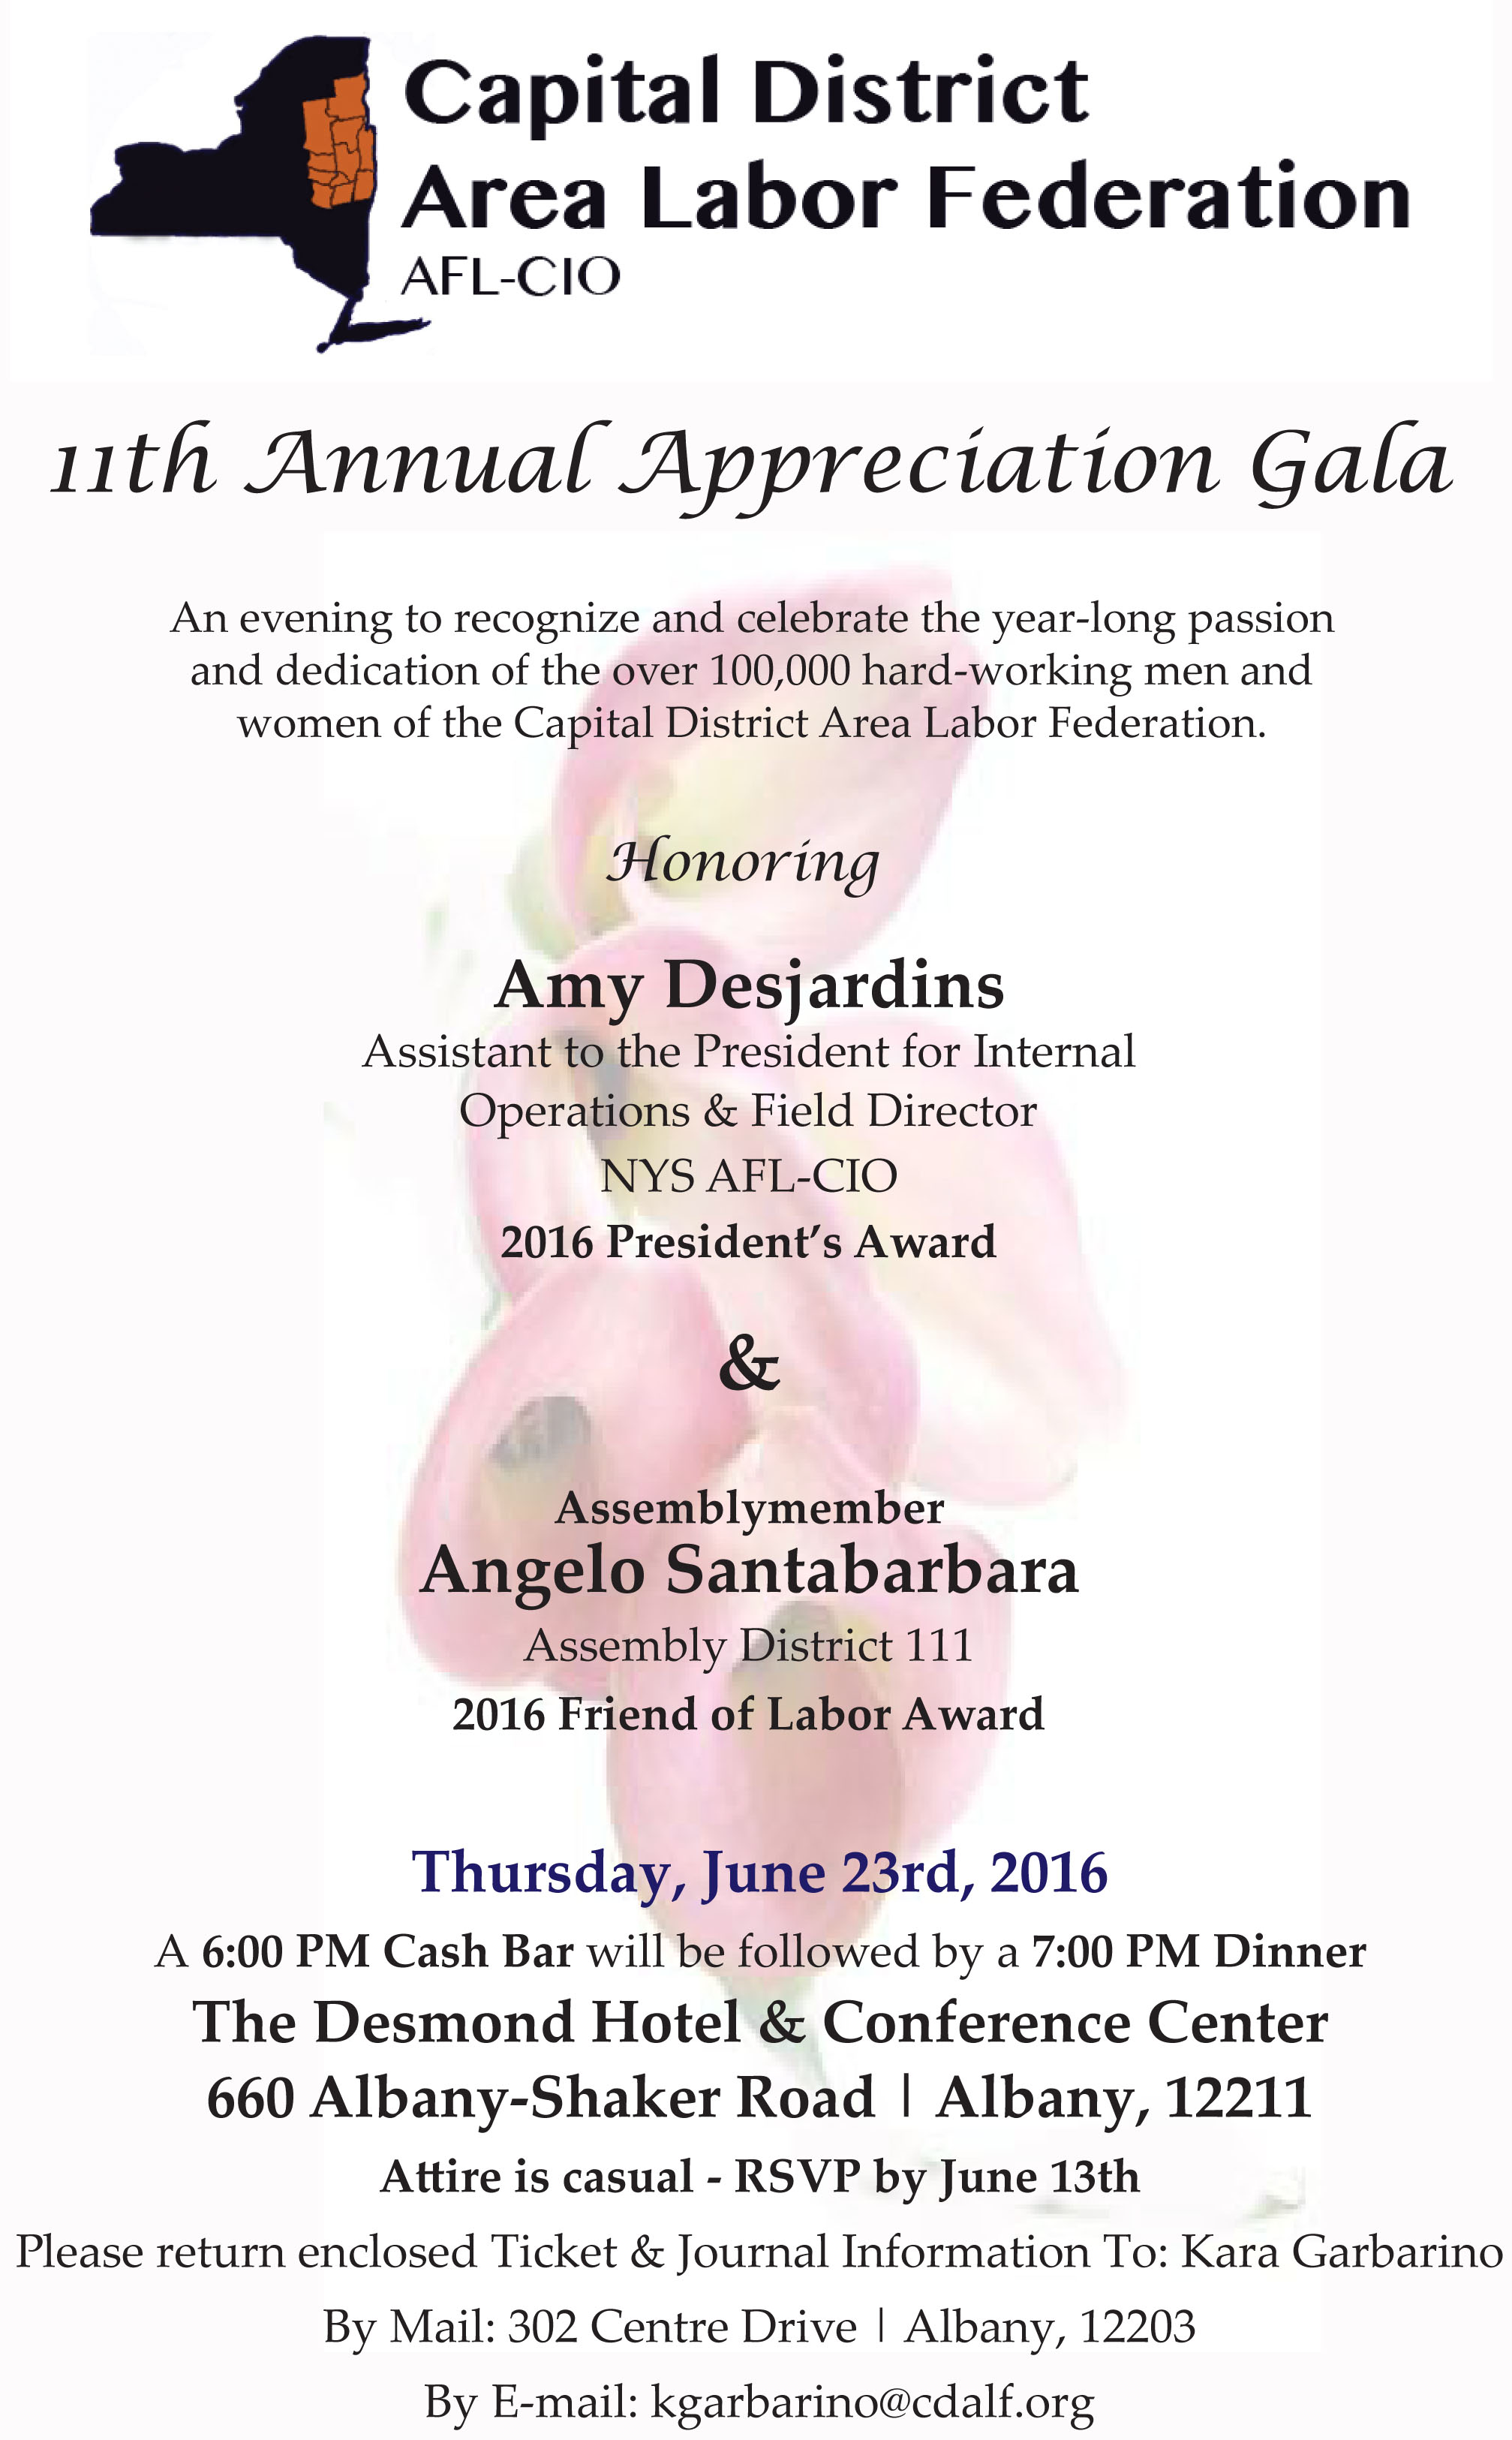 th annual appreciation gala cdalf payments and journal advertisements should be submitted to kara no later than 13th at kgarbarino org 302 centre drive albany ny 12203